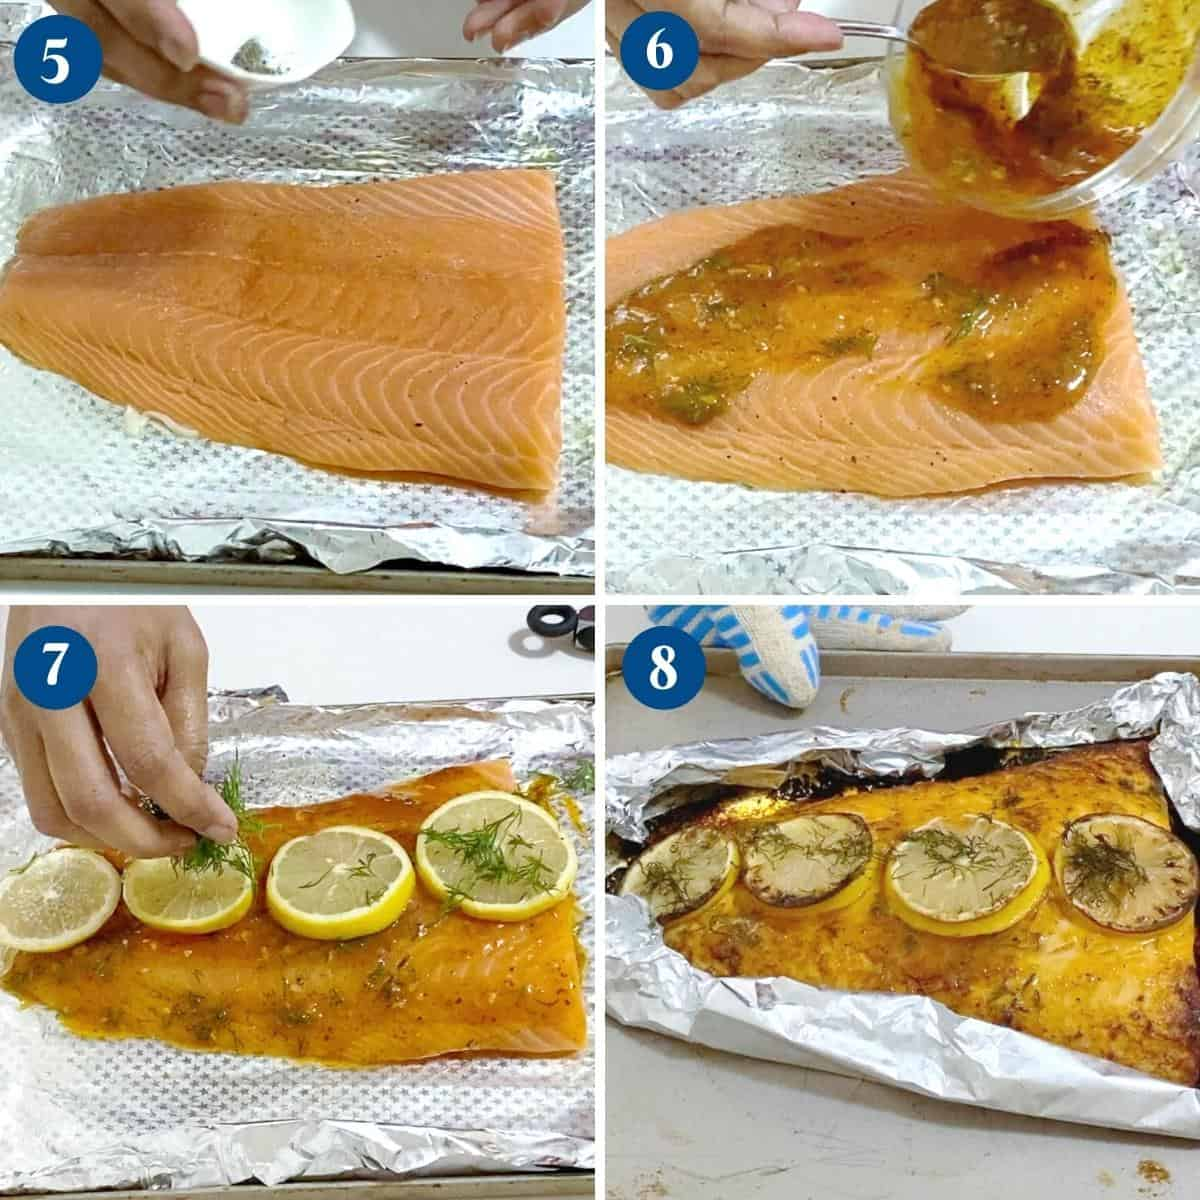 Progress Pictures for Oven Baked Salmon.